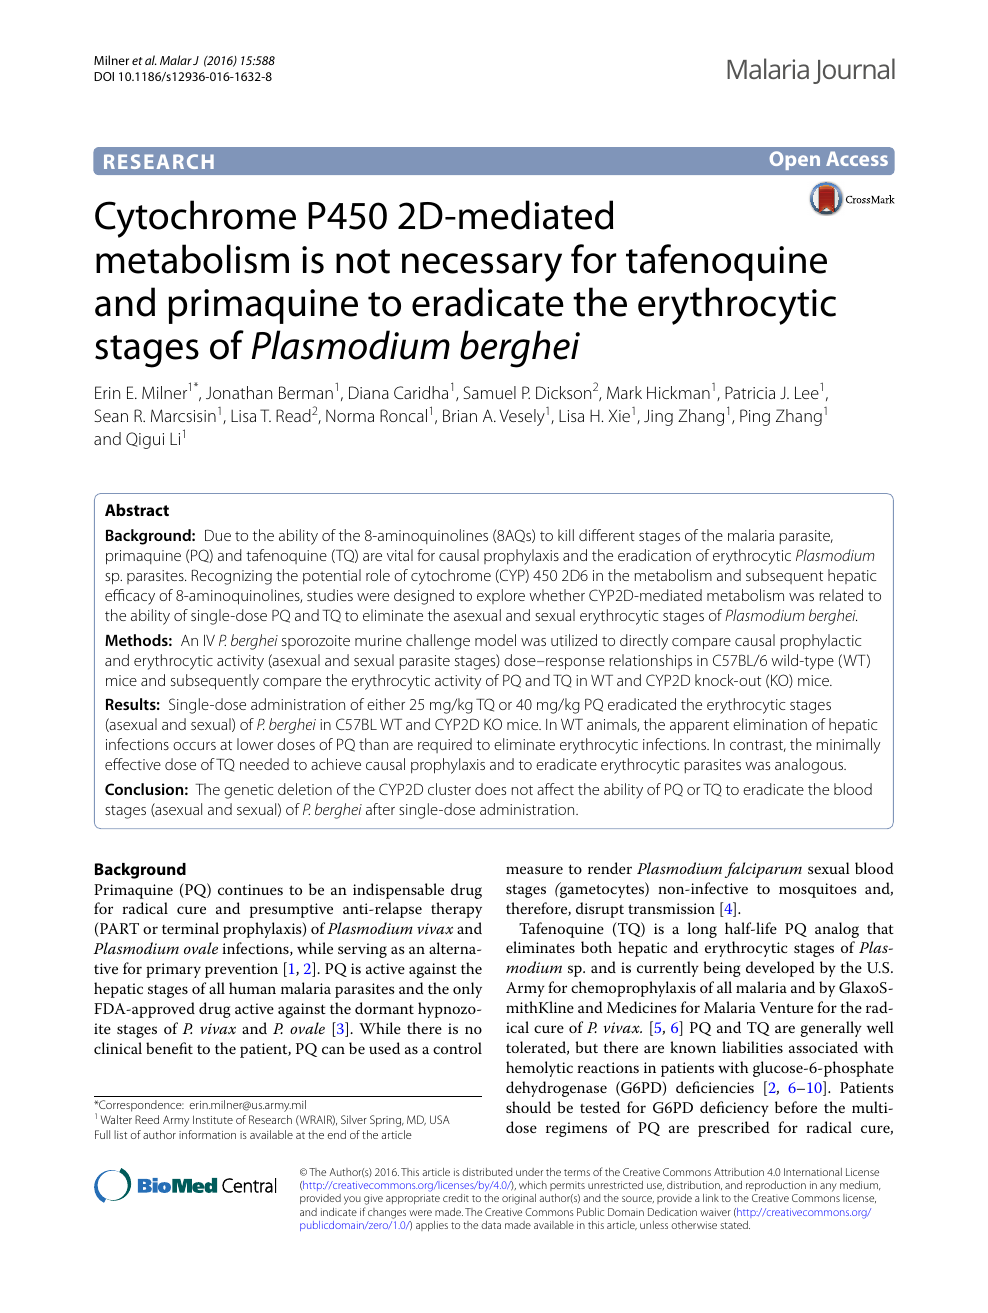 Cytochrome P450 2D-mediated metabolism is not necessary for